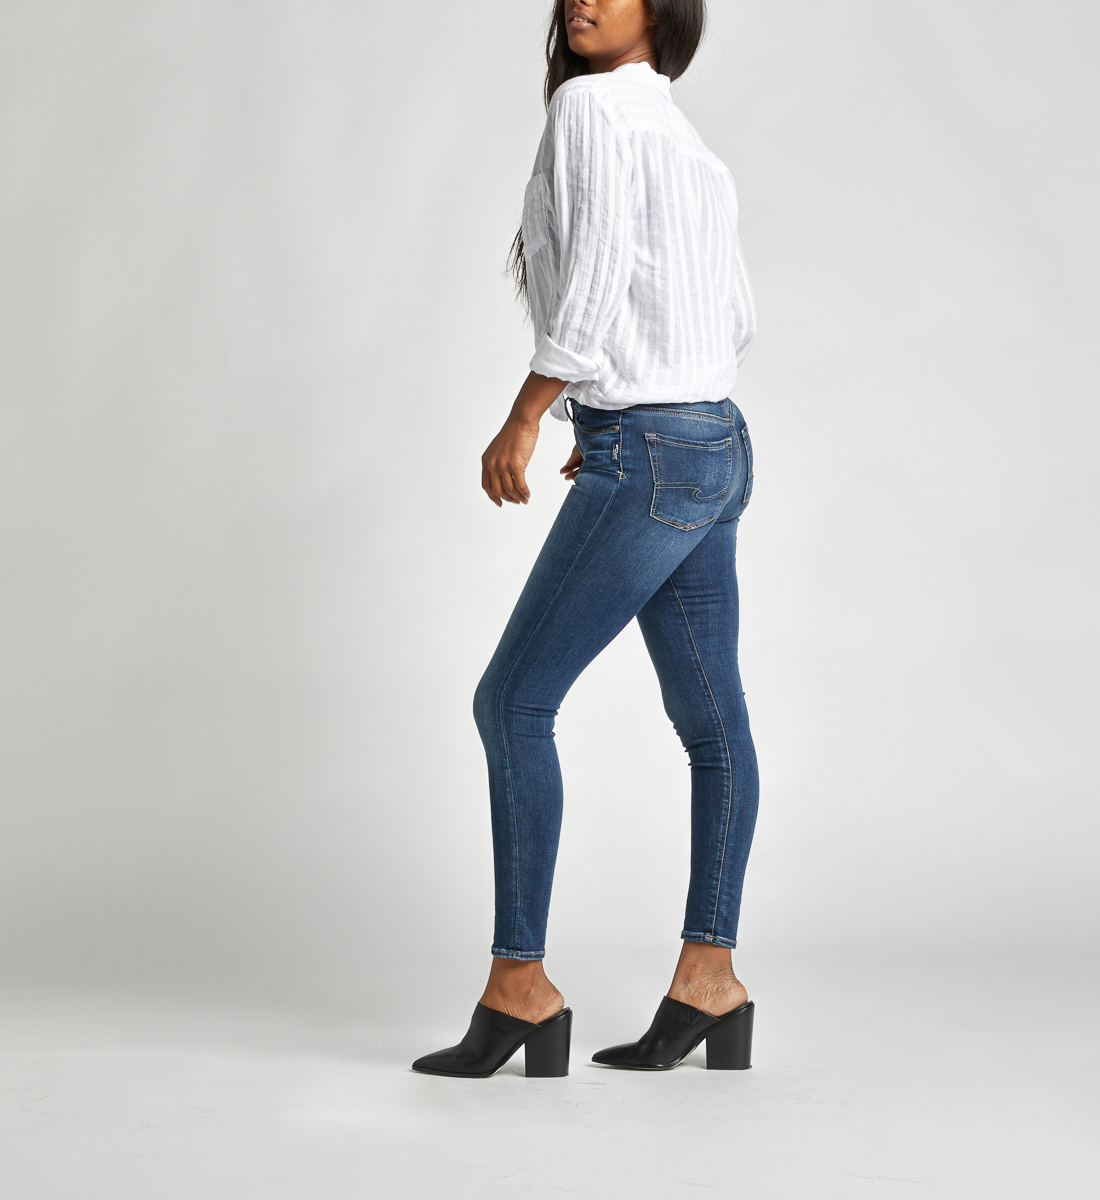 Bleecker Mid Rise Jegging Jeans Side